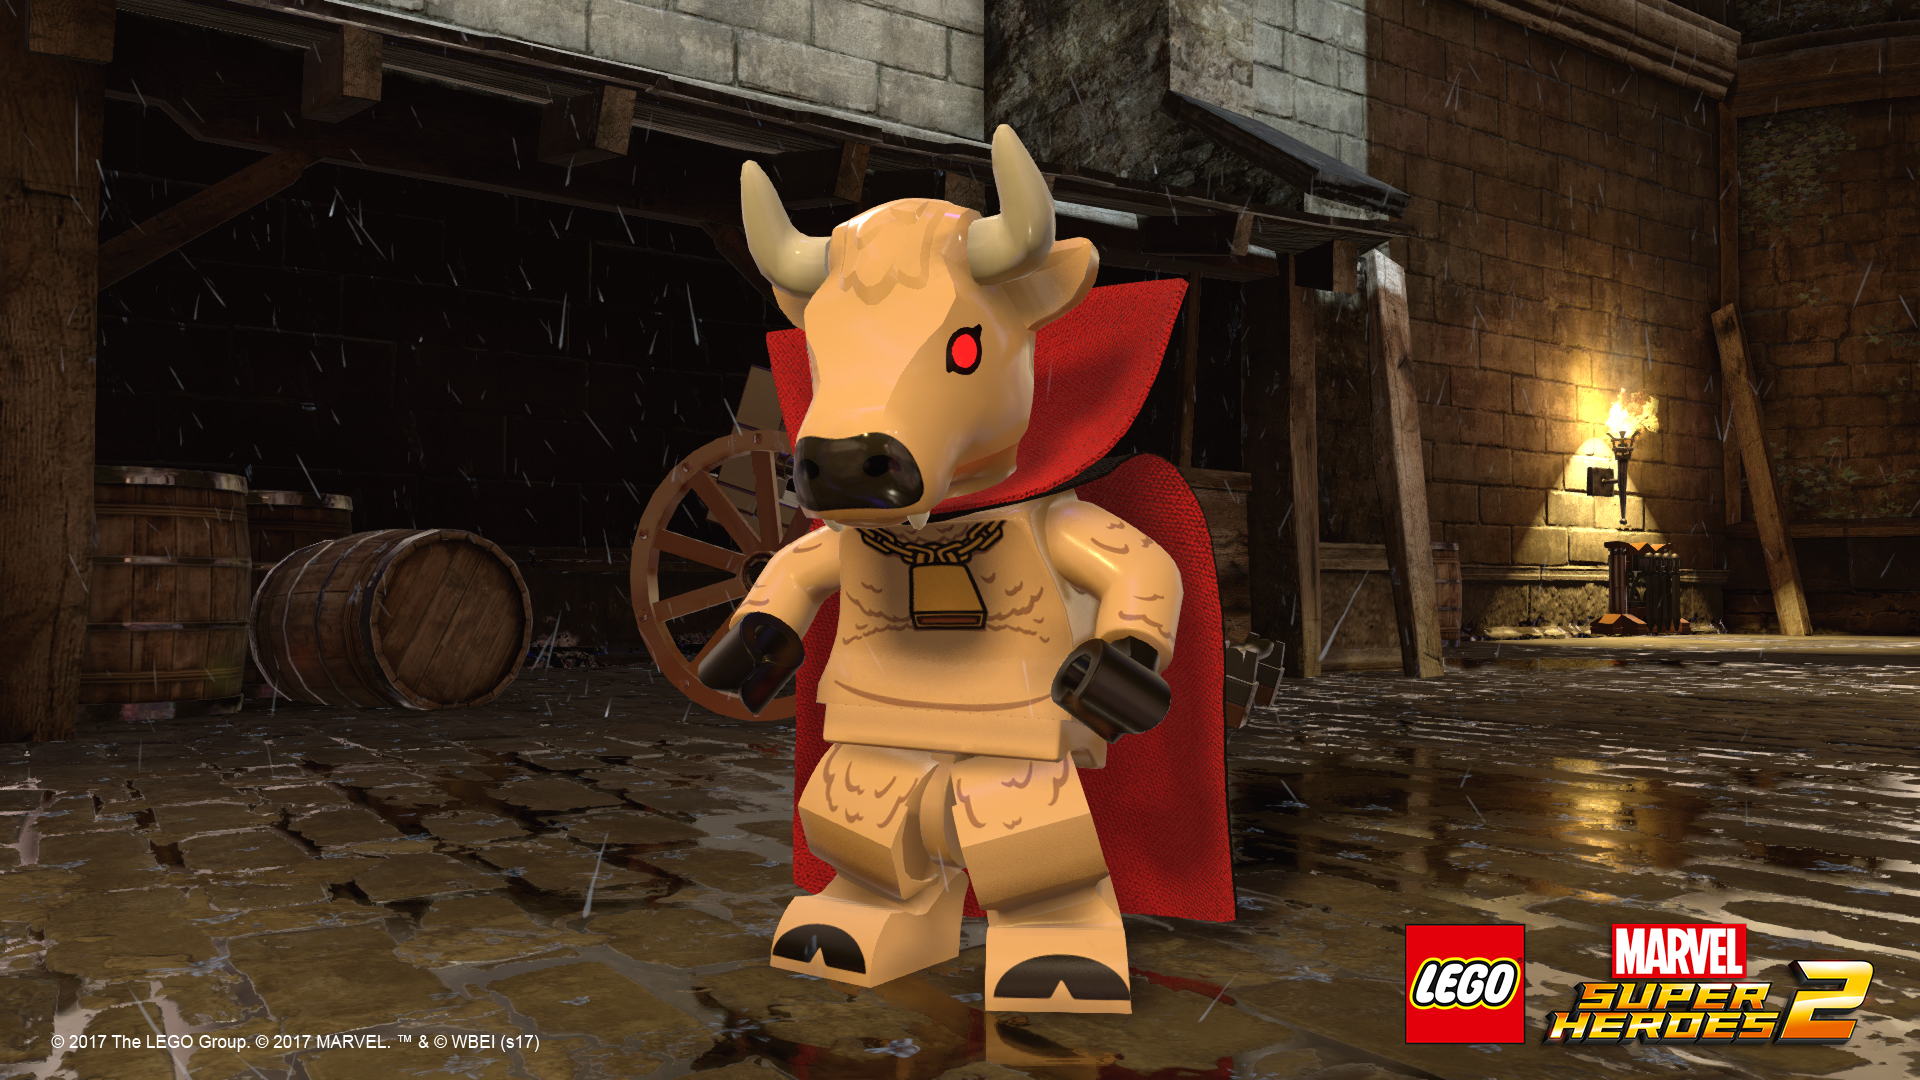 LEGO_Marvel_Super_Heroes_2_-_Hellcow_1507794992